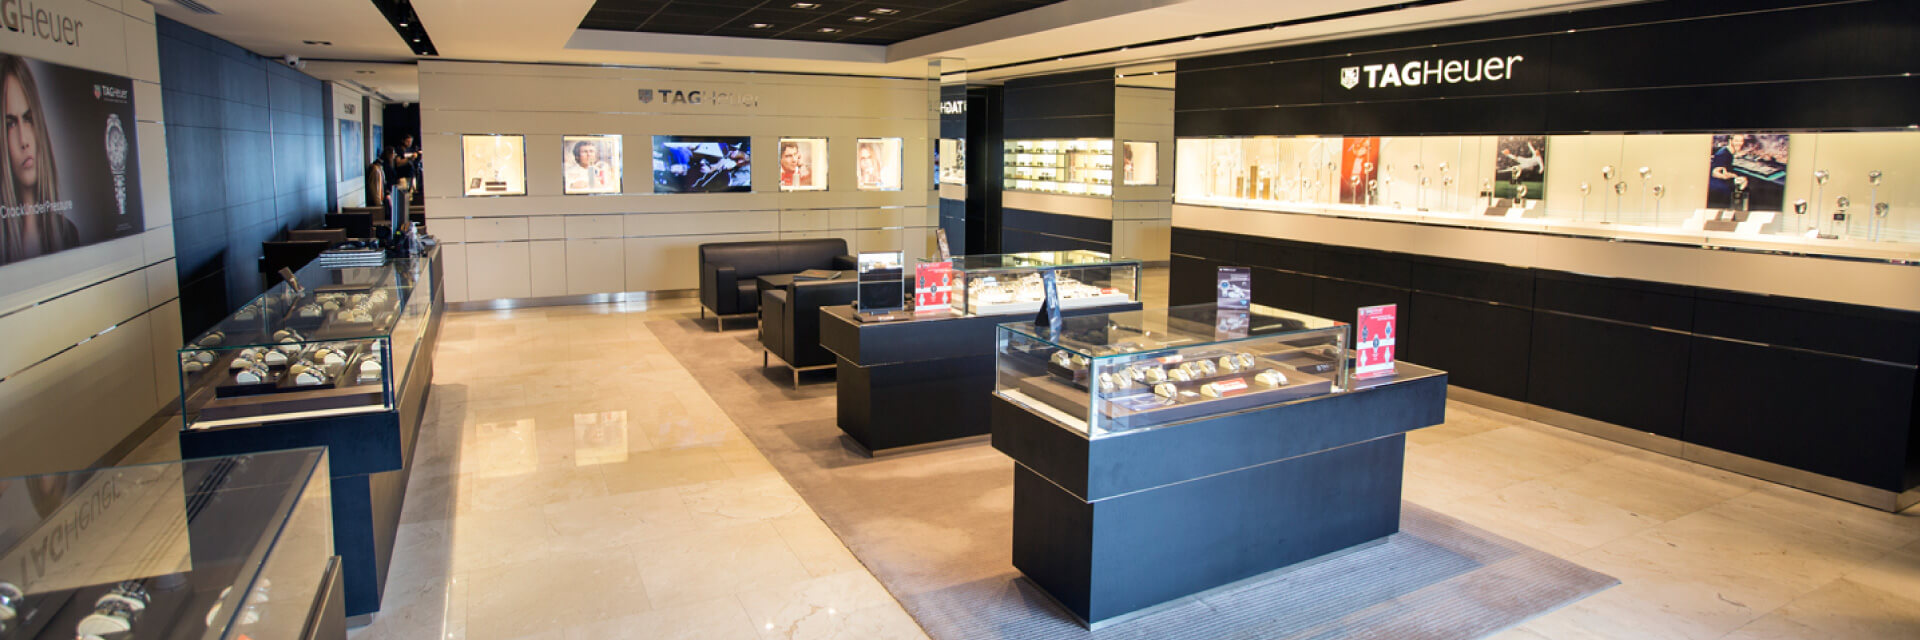 Kirk Freeport presents Tag Heuer Boutique a one-stop shopping destination located in George Town in the Grand Cayman Islands